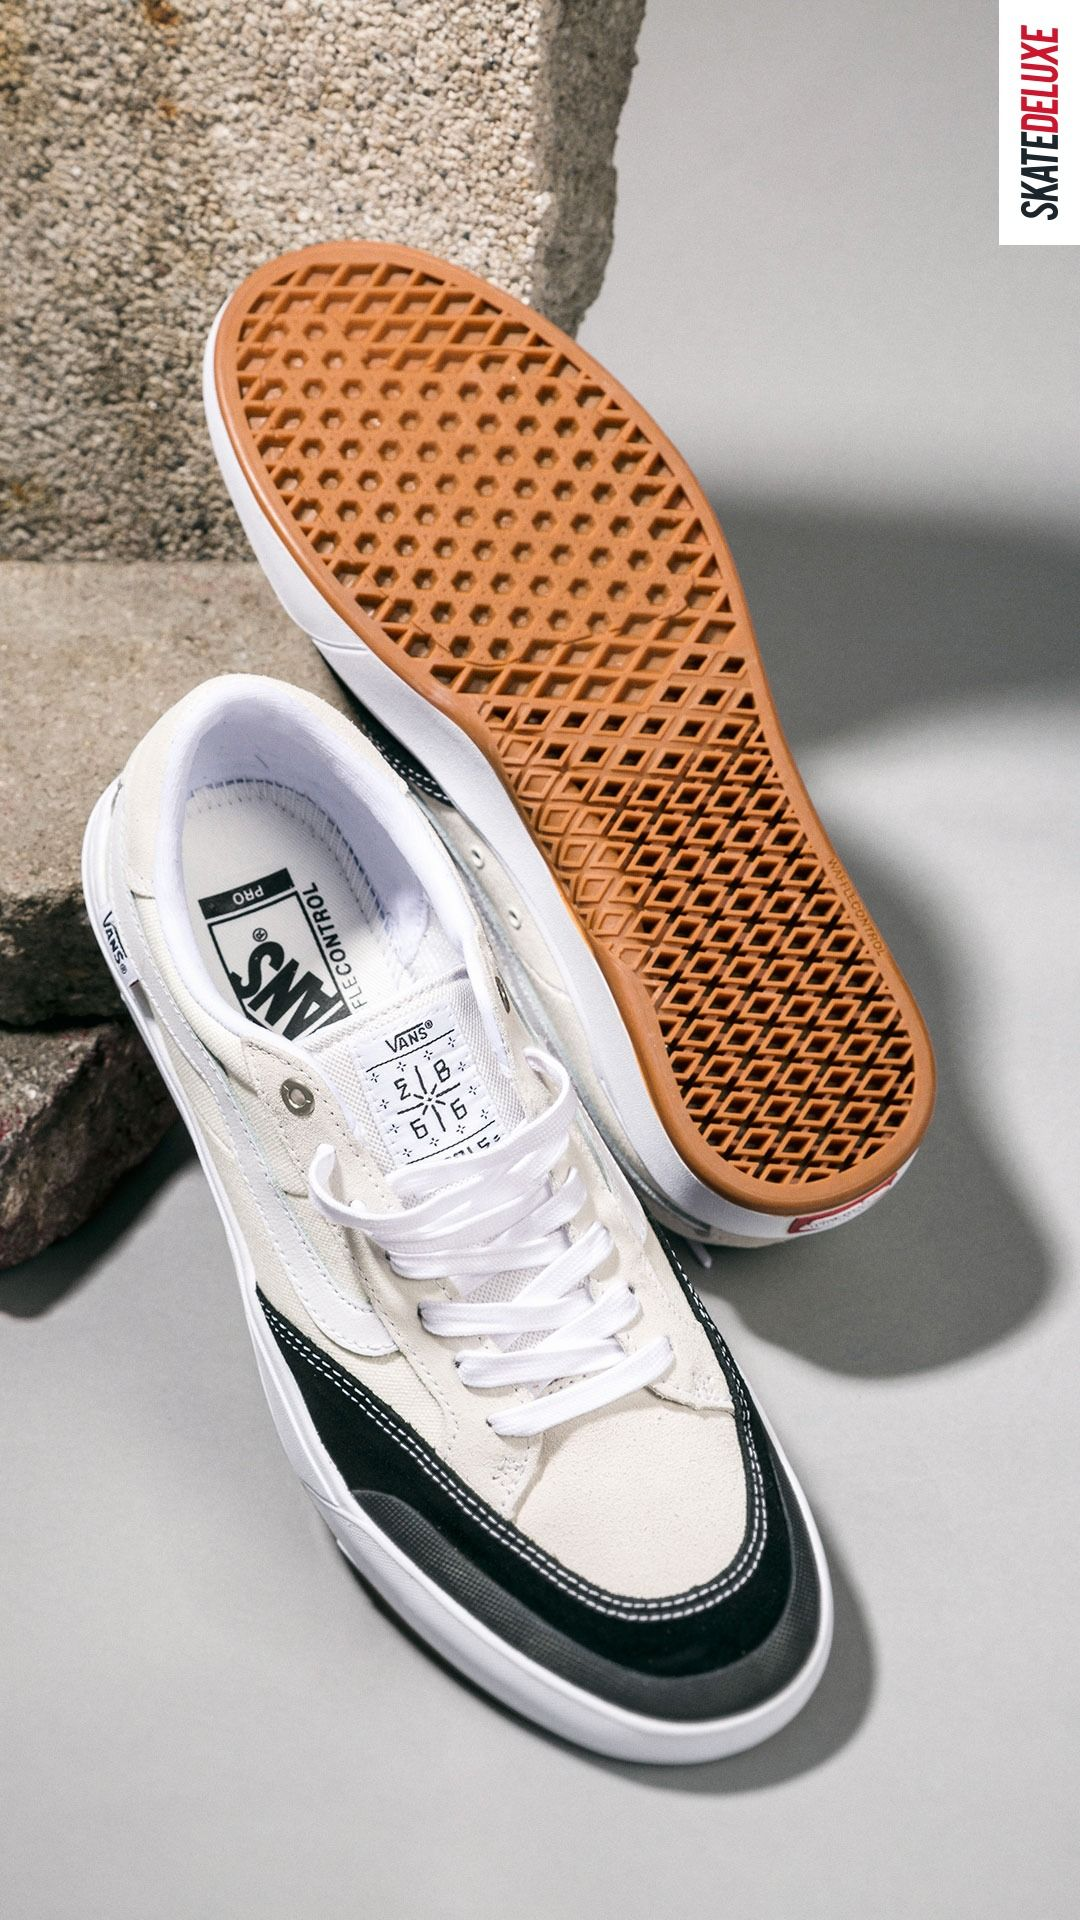 Vans Berle Pro Shoes (marshmallow black) in 2020 | Vans